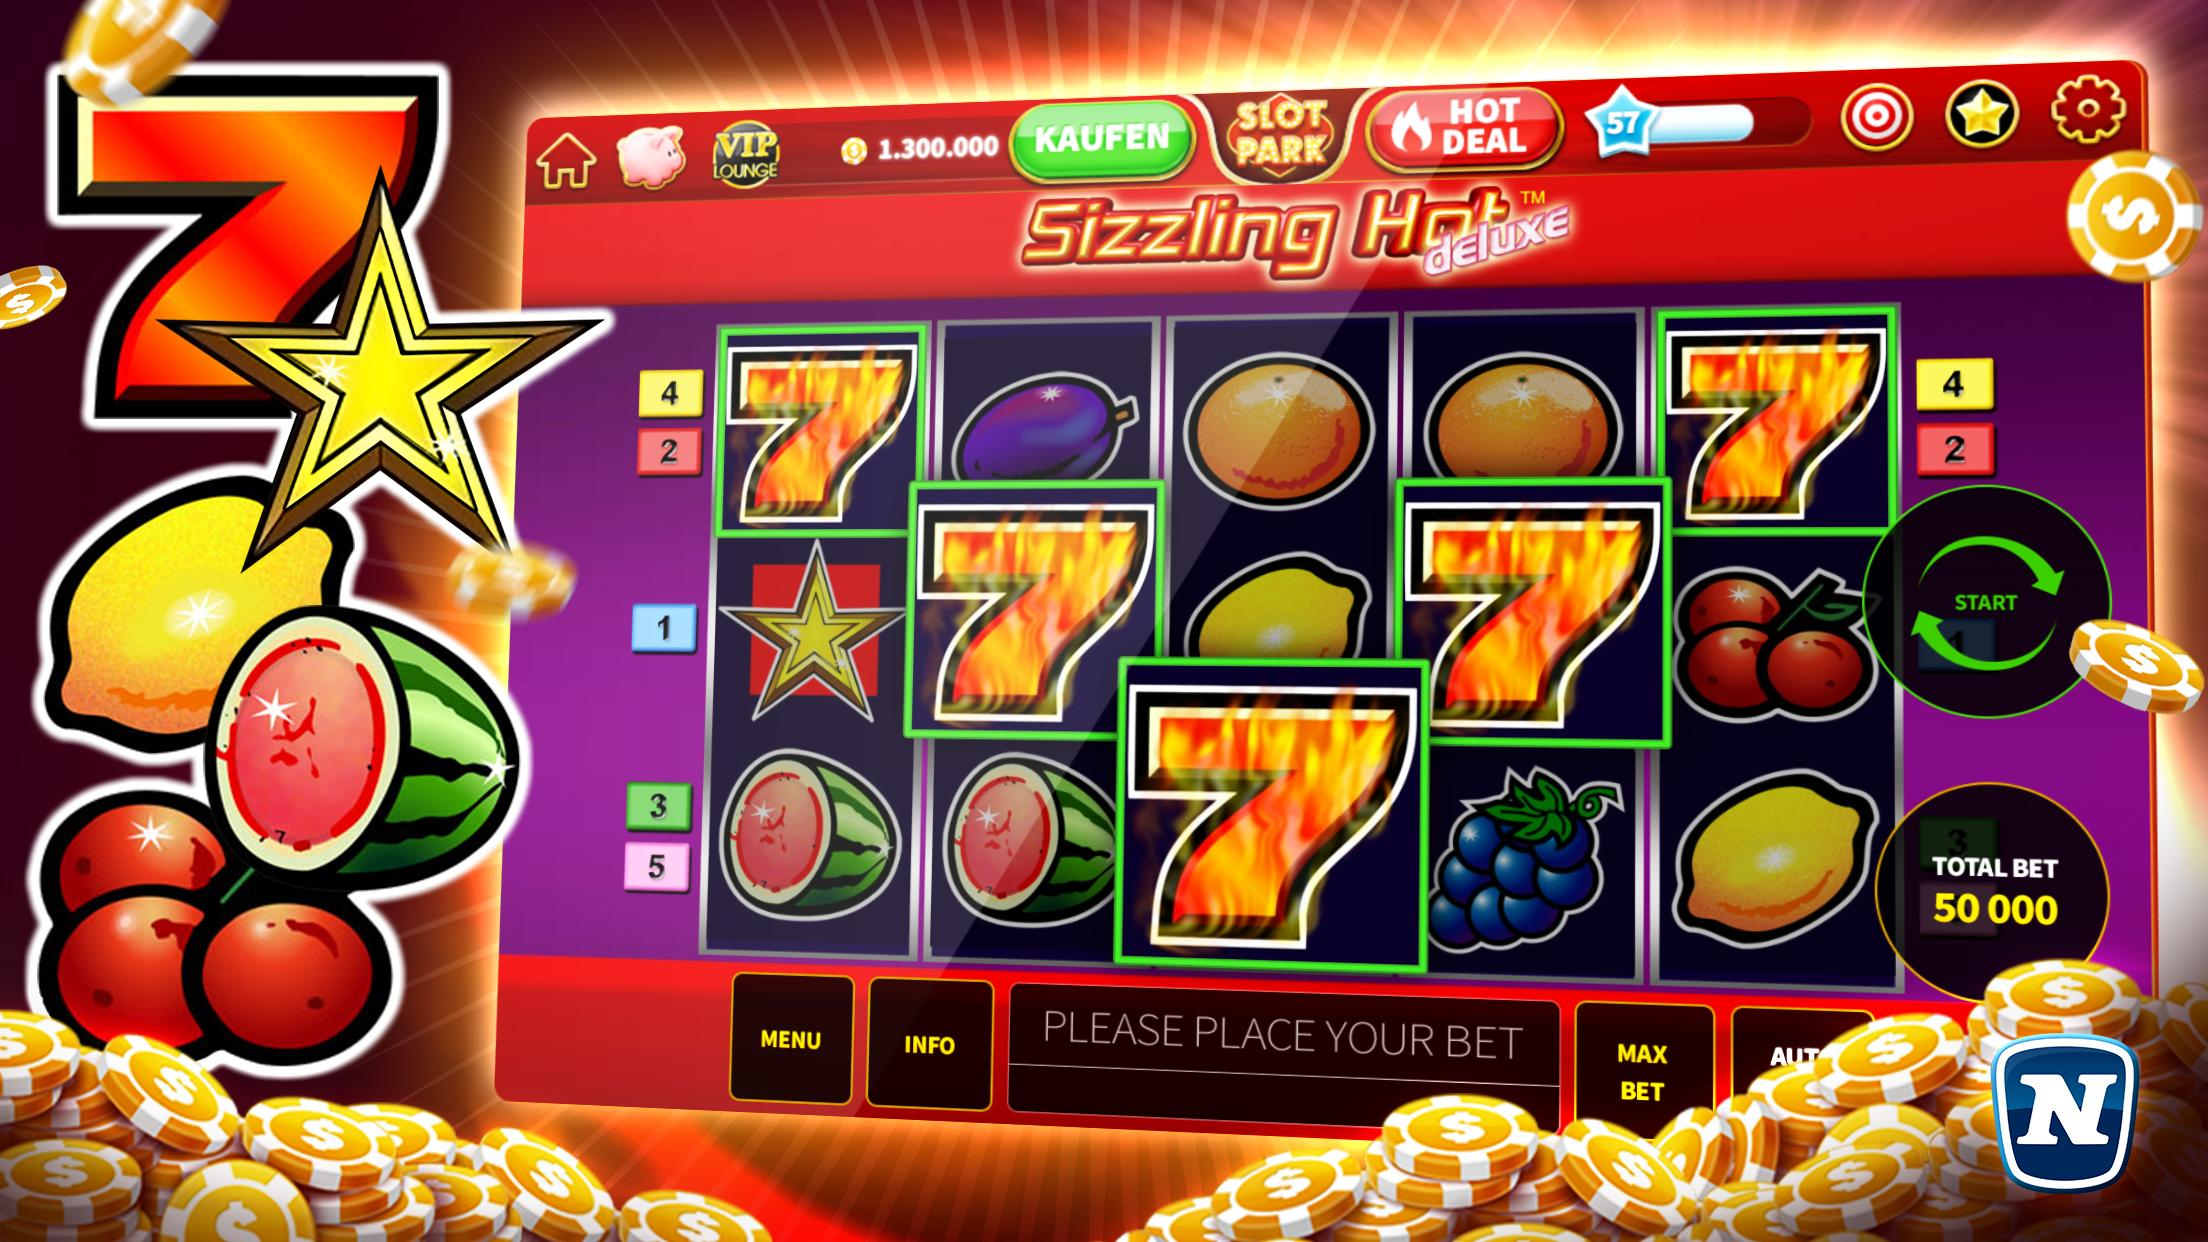 Slotpark Online Casino Games & Free Slot Machine 3.21.1 Screenshot 6